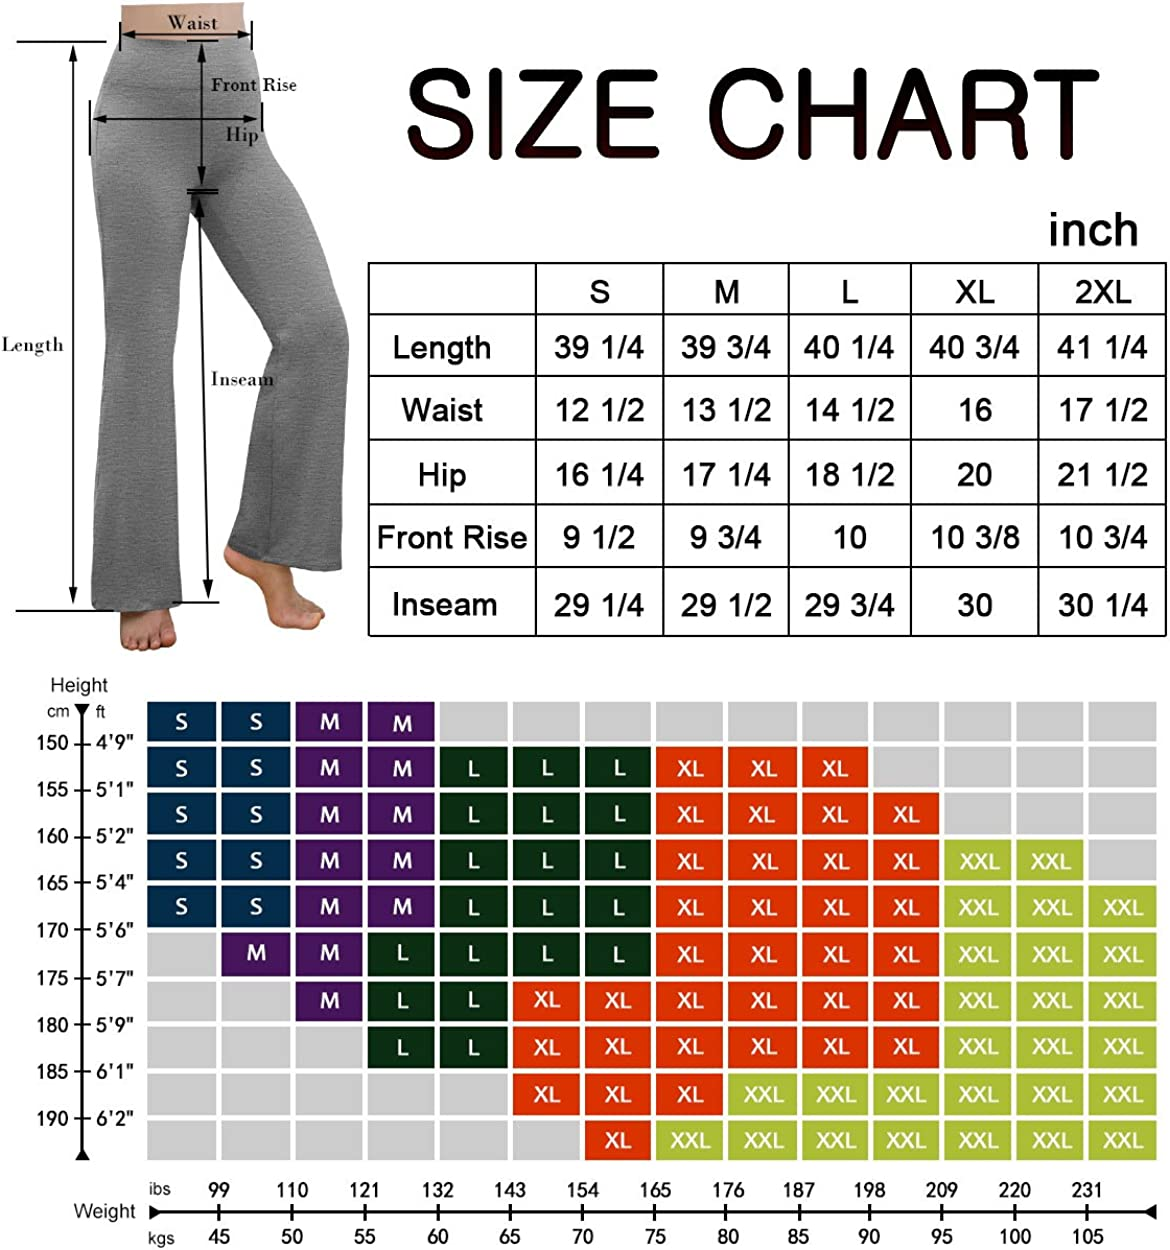 REETOYO Bootcut Yoga Pants with Inner Pocket for Women High Waist Workout Bootleg Pants Tummy Control Work Pants for Women